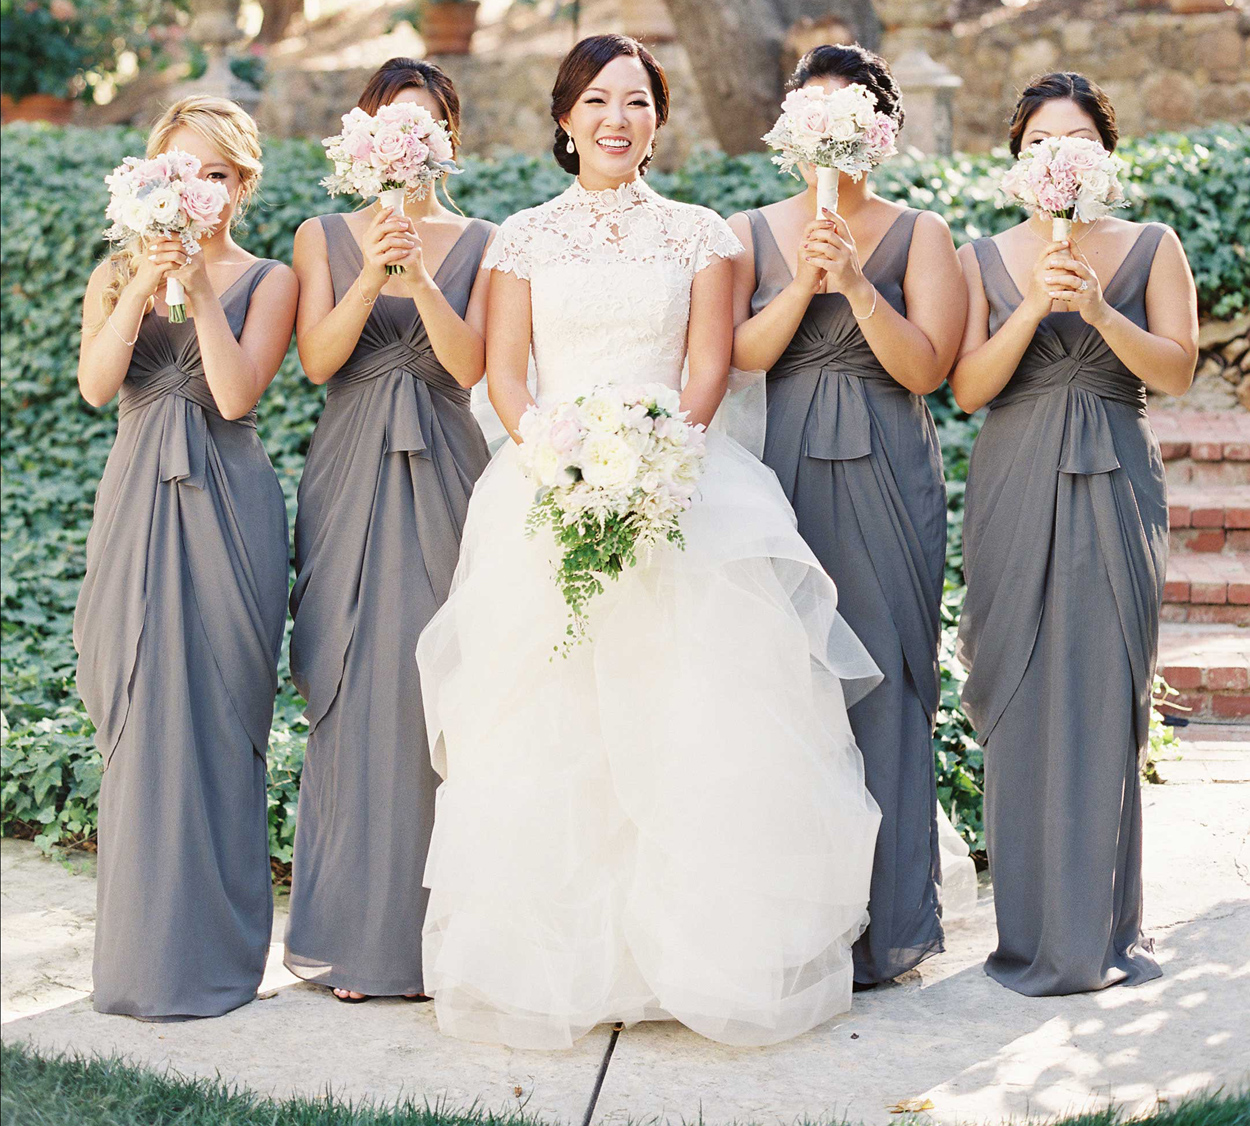 what bridesmaids shouldn't do on the wedding day